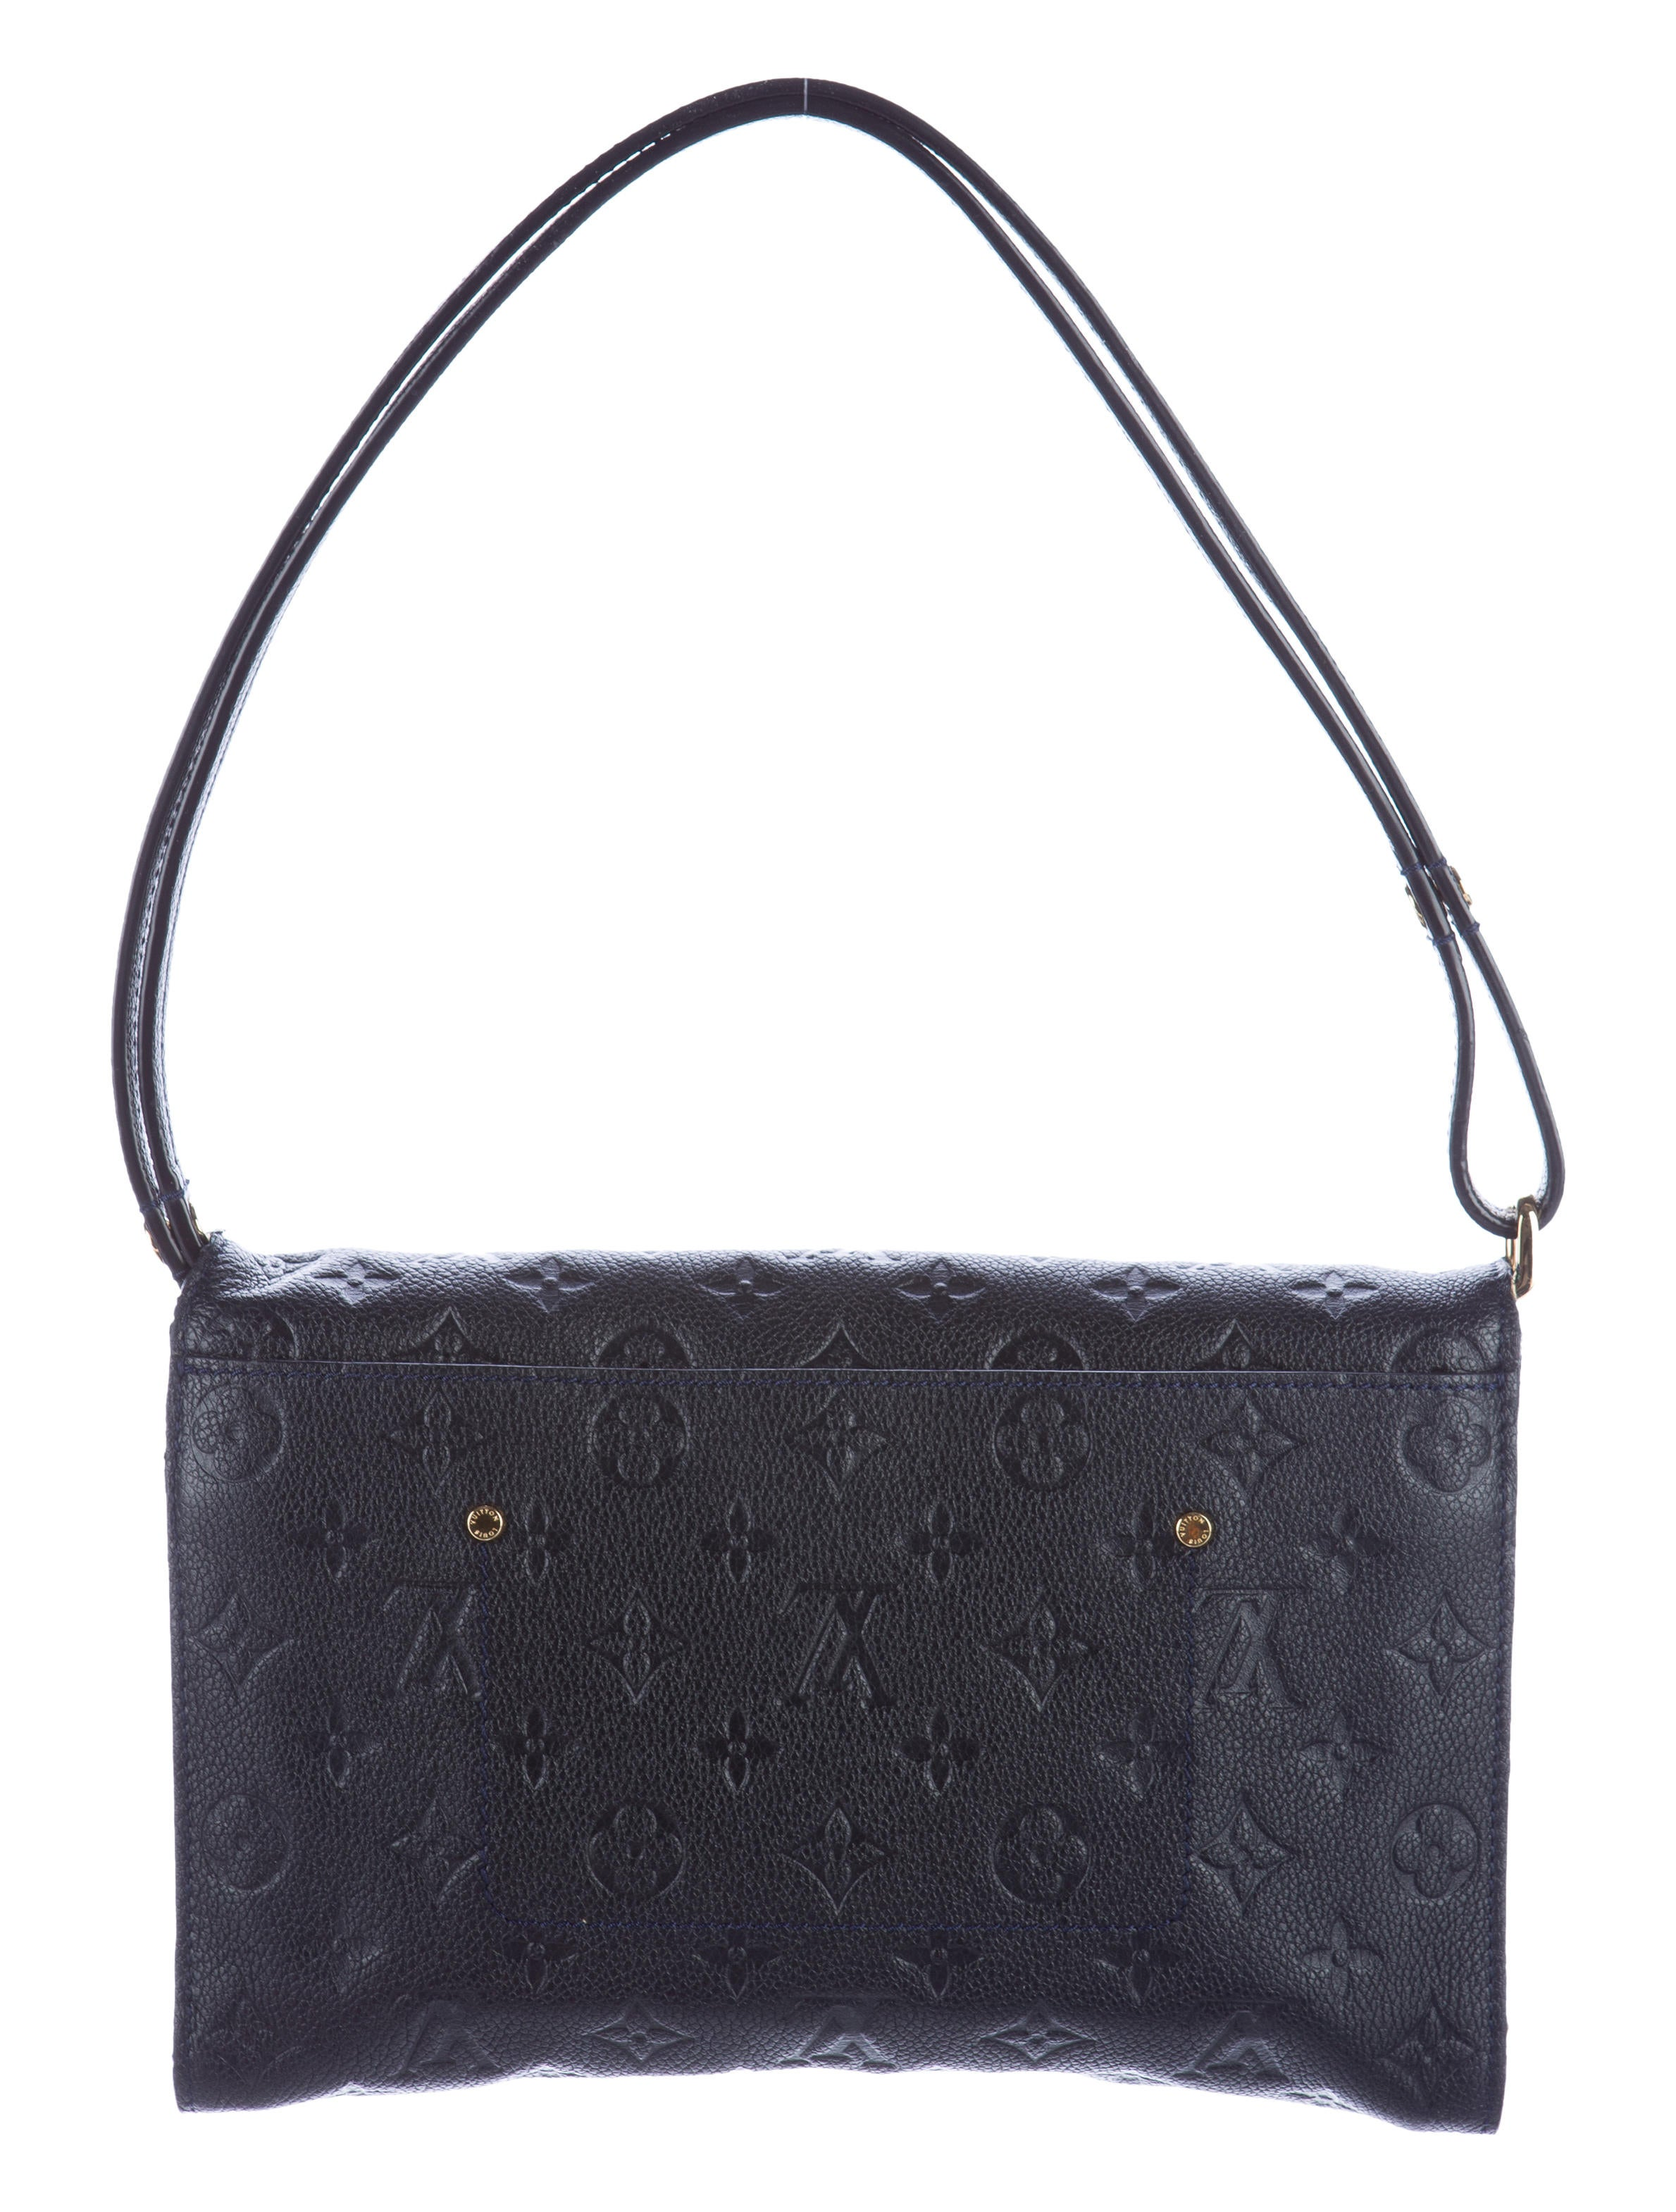 Louis Vuitton Empreinte Fascinante Bag - Handbags - LOU95295  06b7dab7710e1